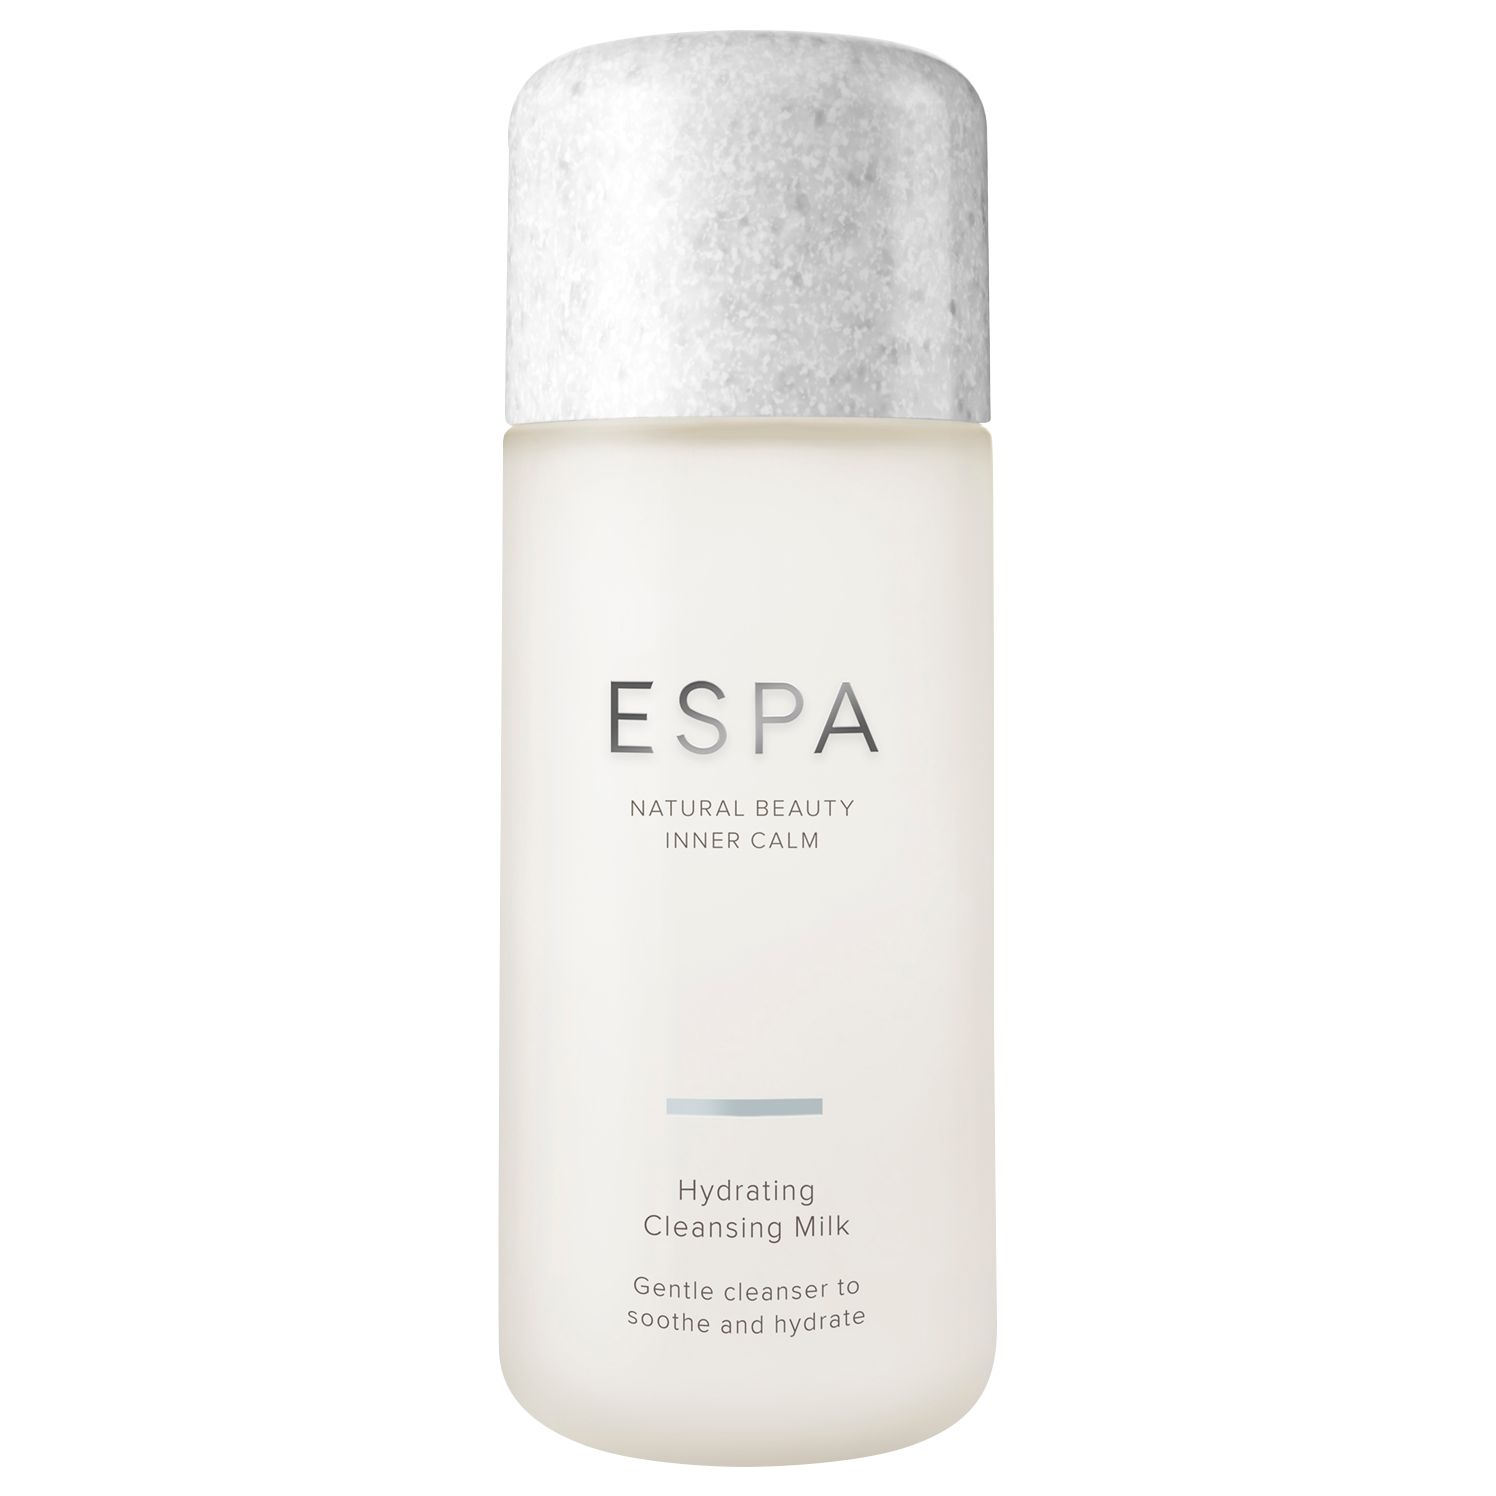 ESPA ESPA Hydrating Cleansing Milk, 200ml